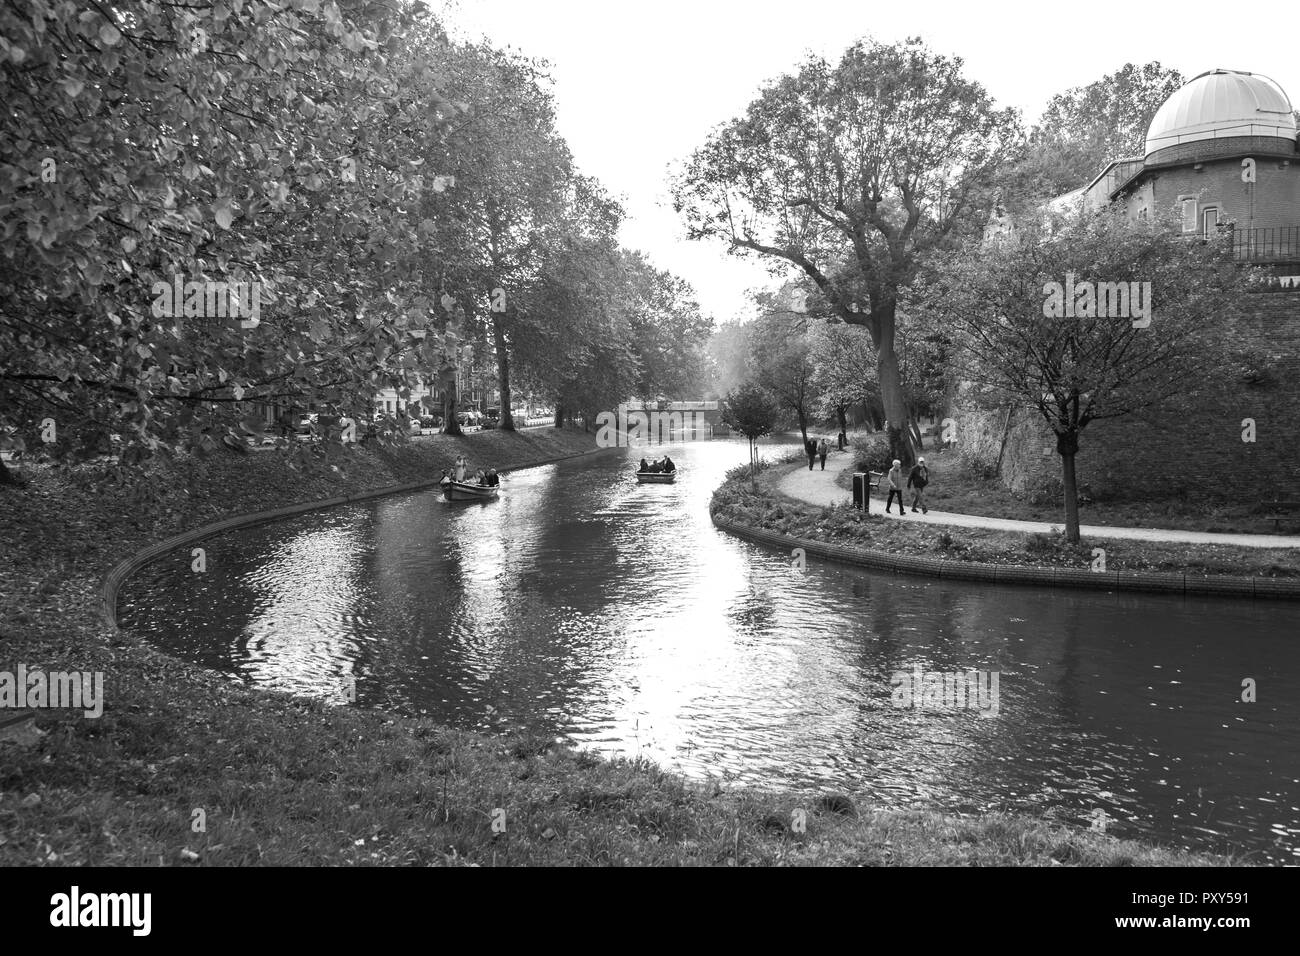 River in the city of utrecht in black and white